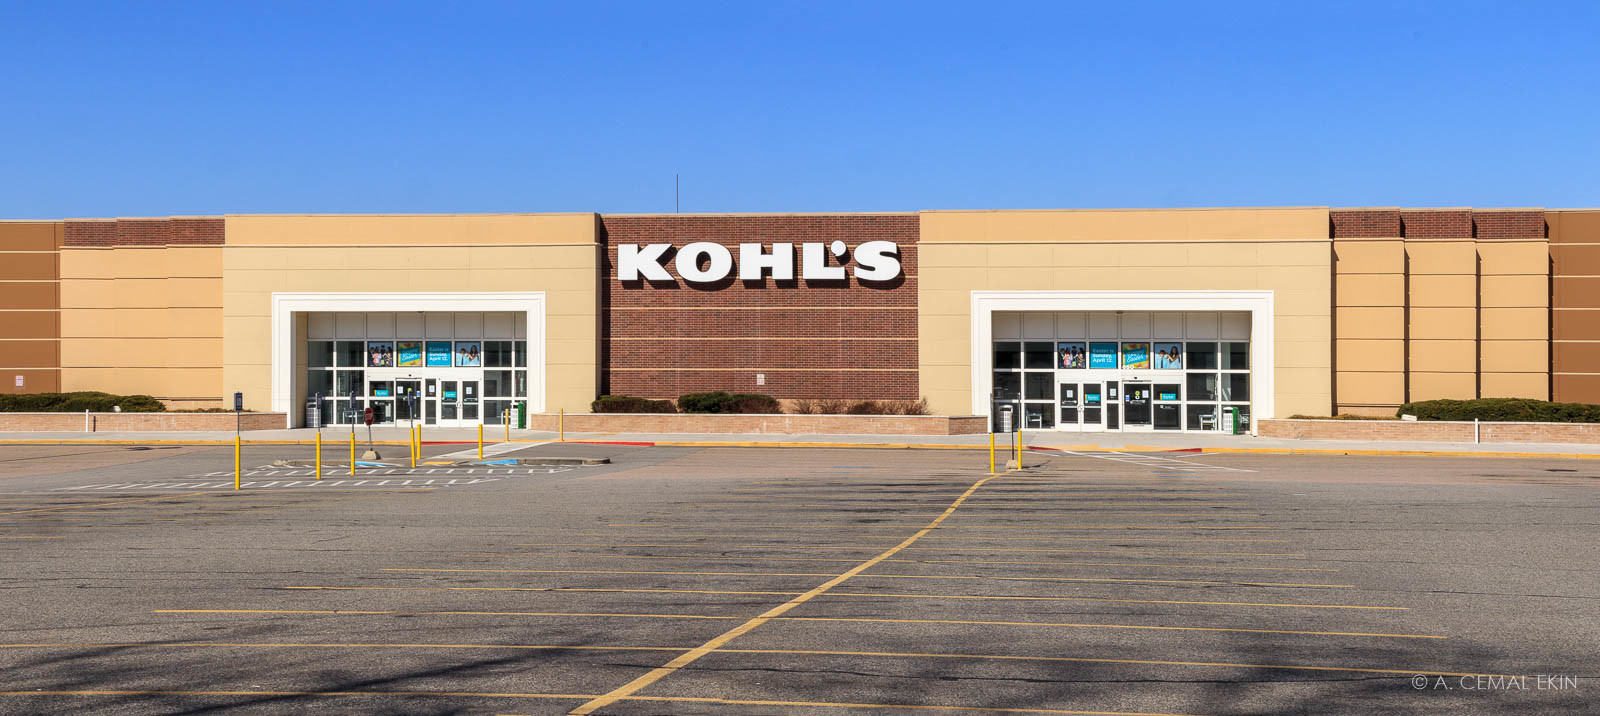 Empty lot in front of Kohl's